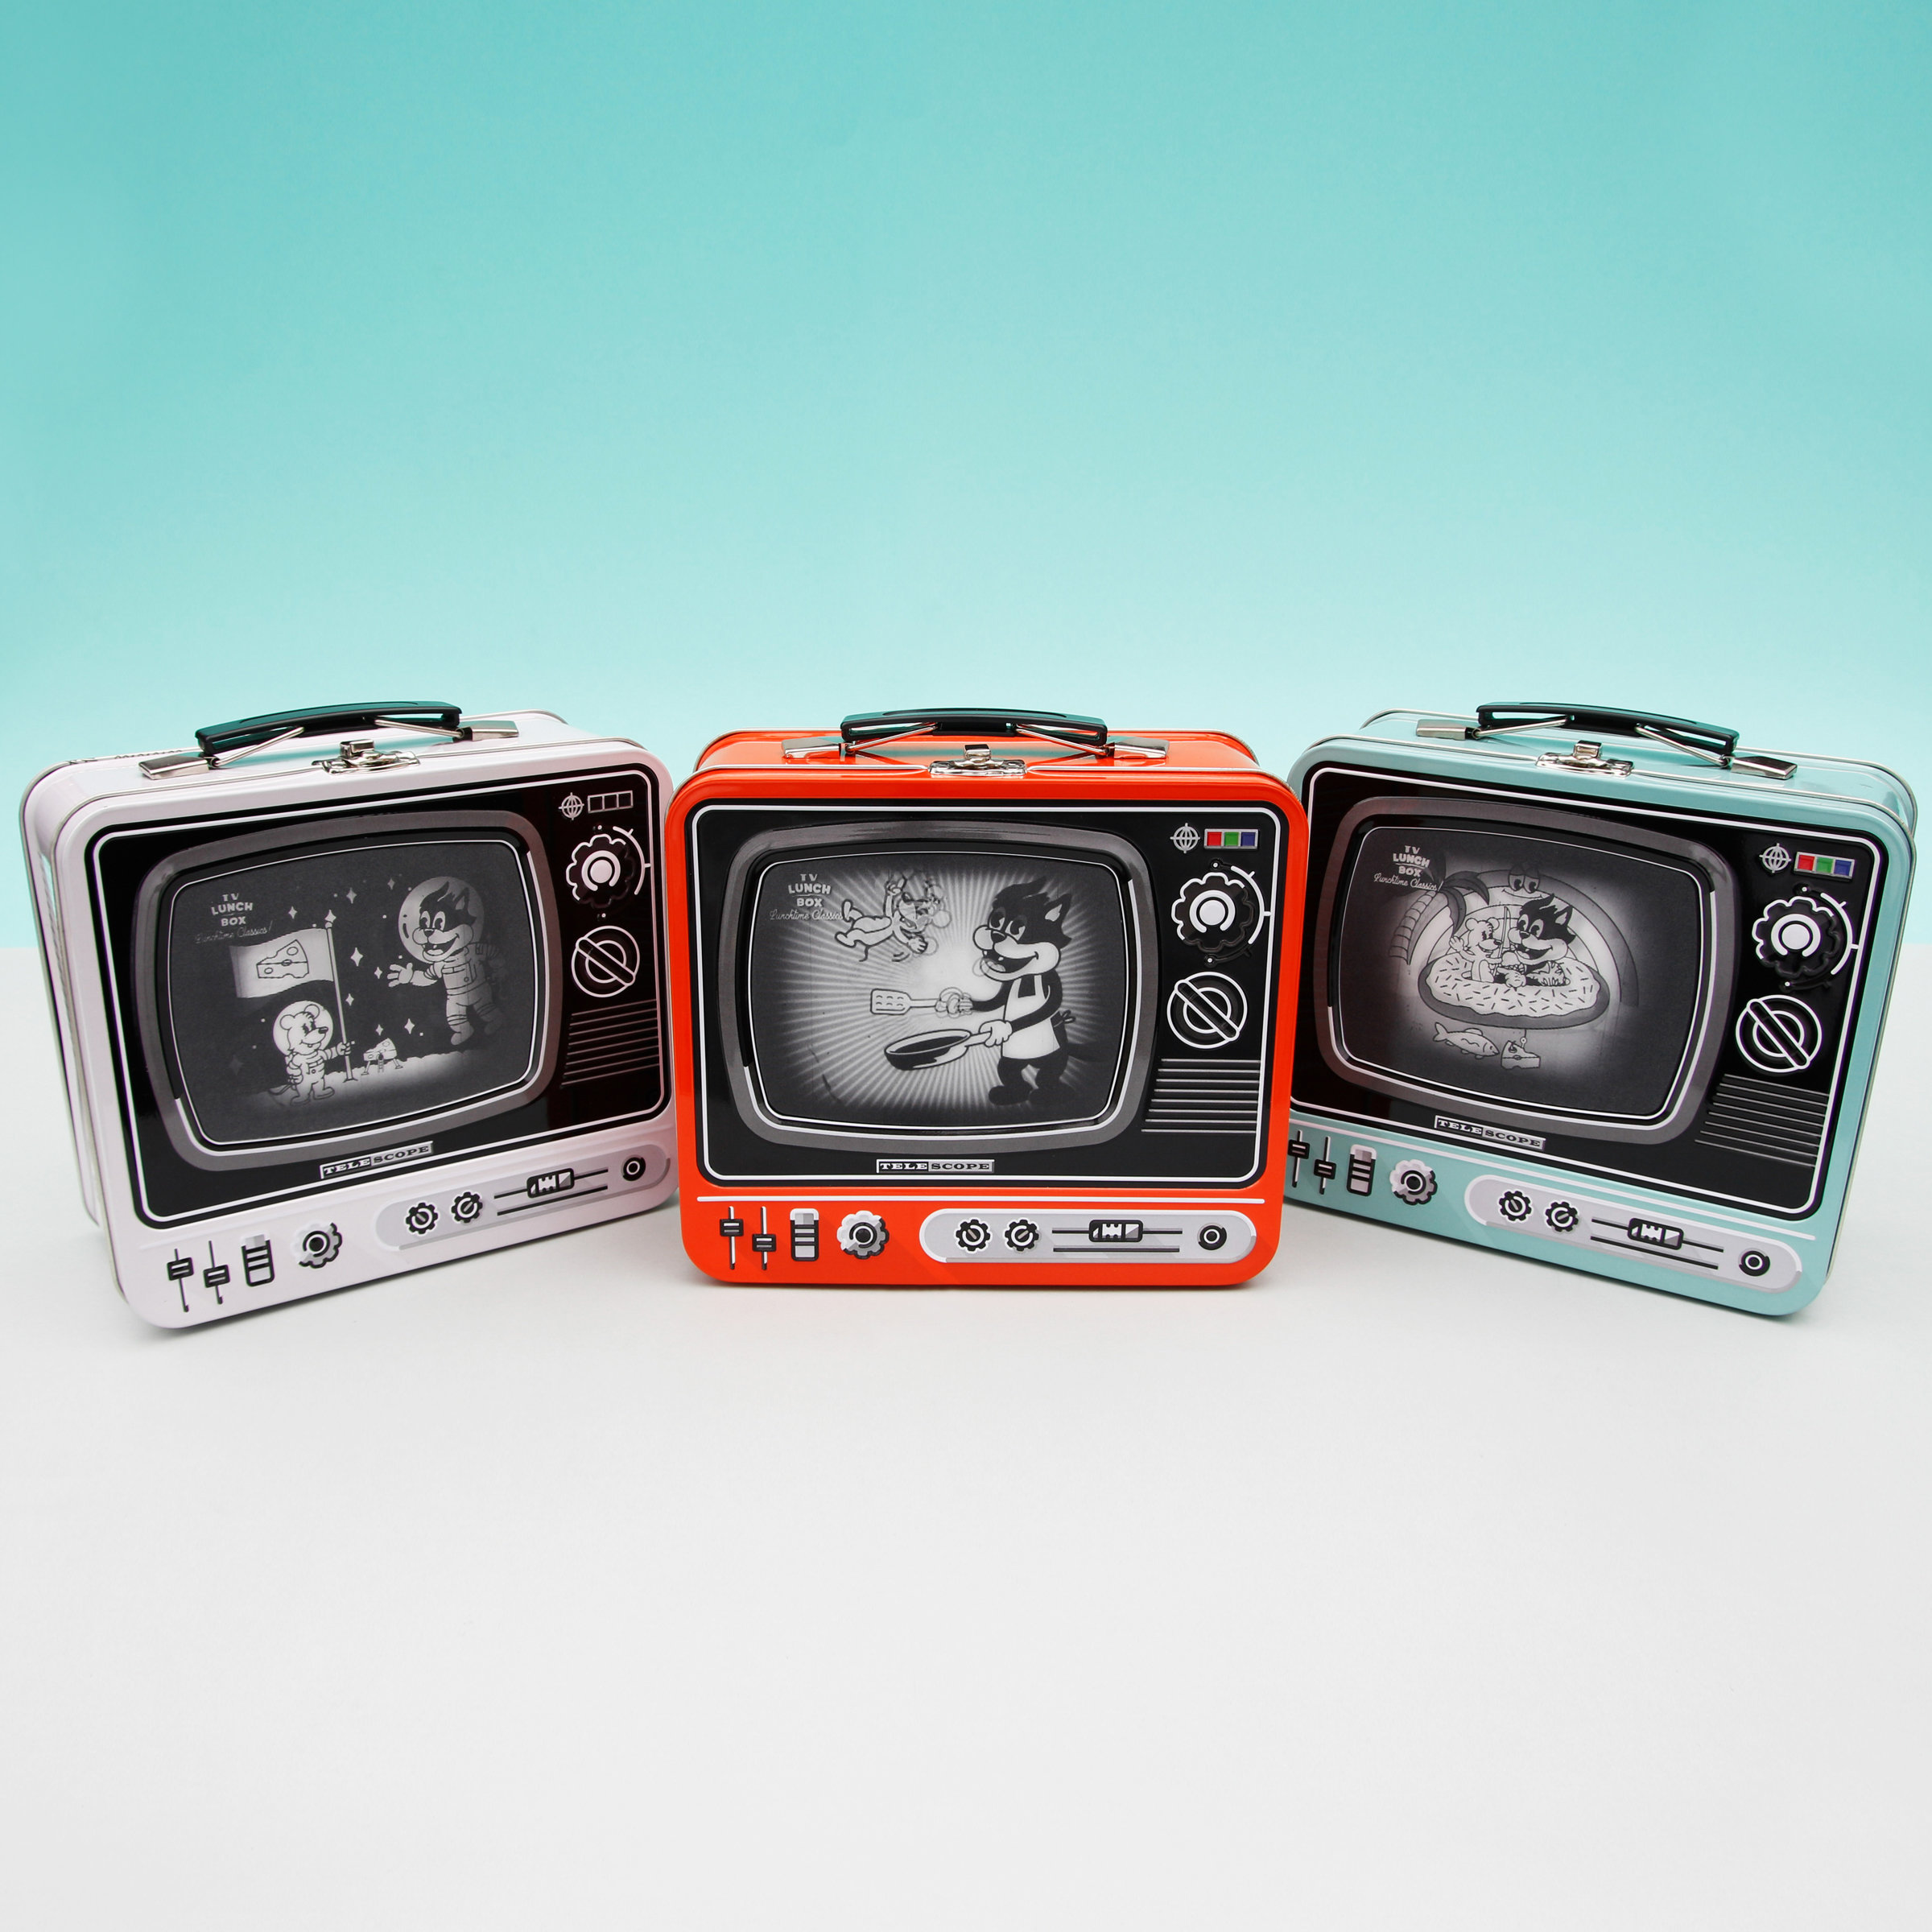 TV Lunch Box with Lenticular screen 3 colours